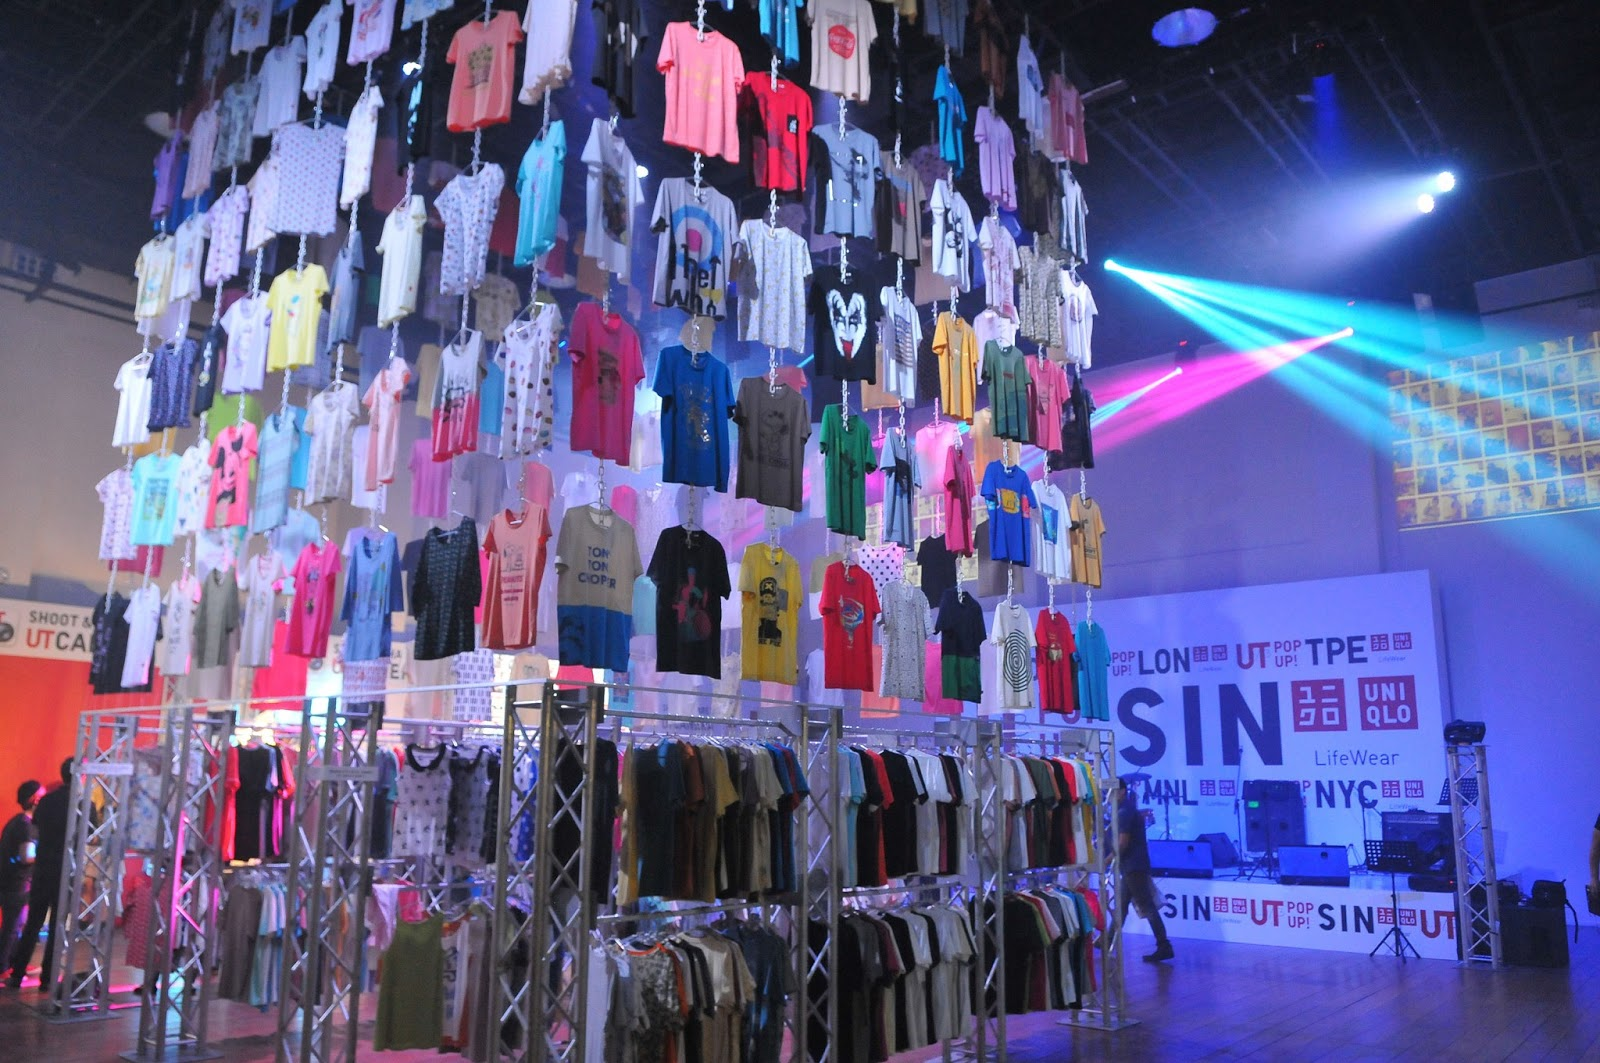 Uniqlo UT pop up shop: Giving a little something back to the Singapore  creative scene